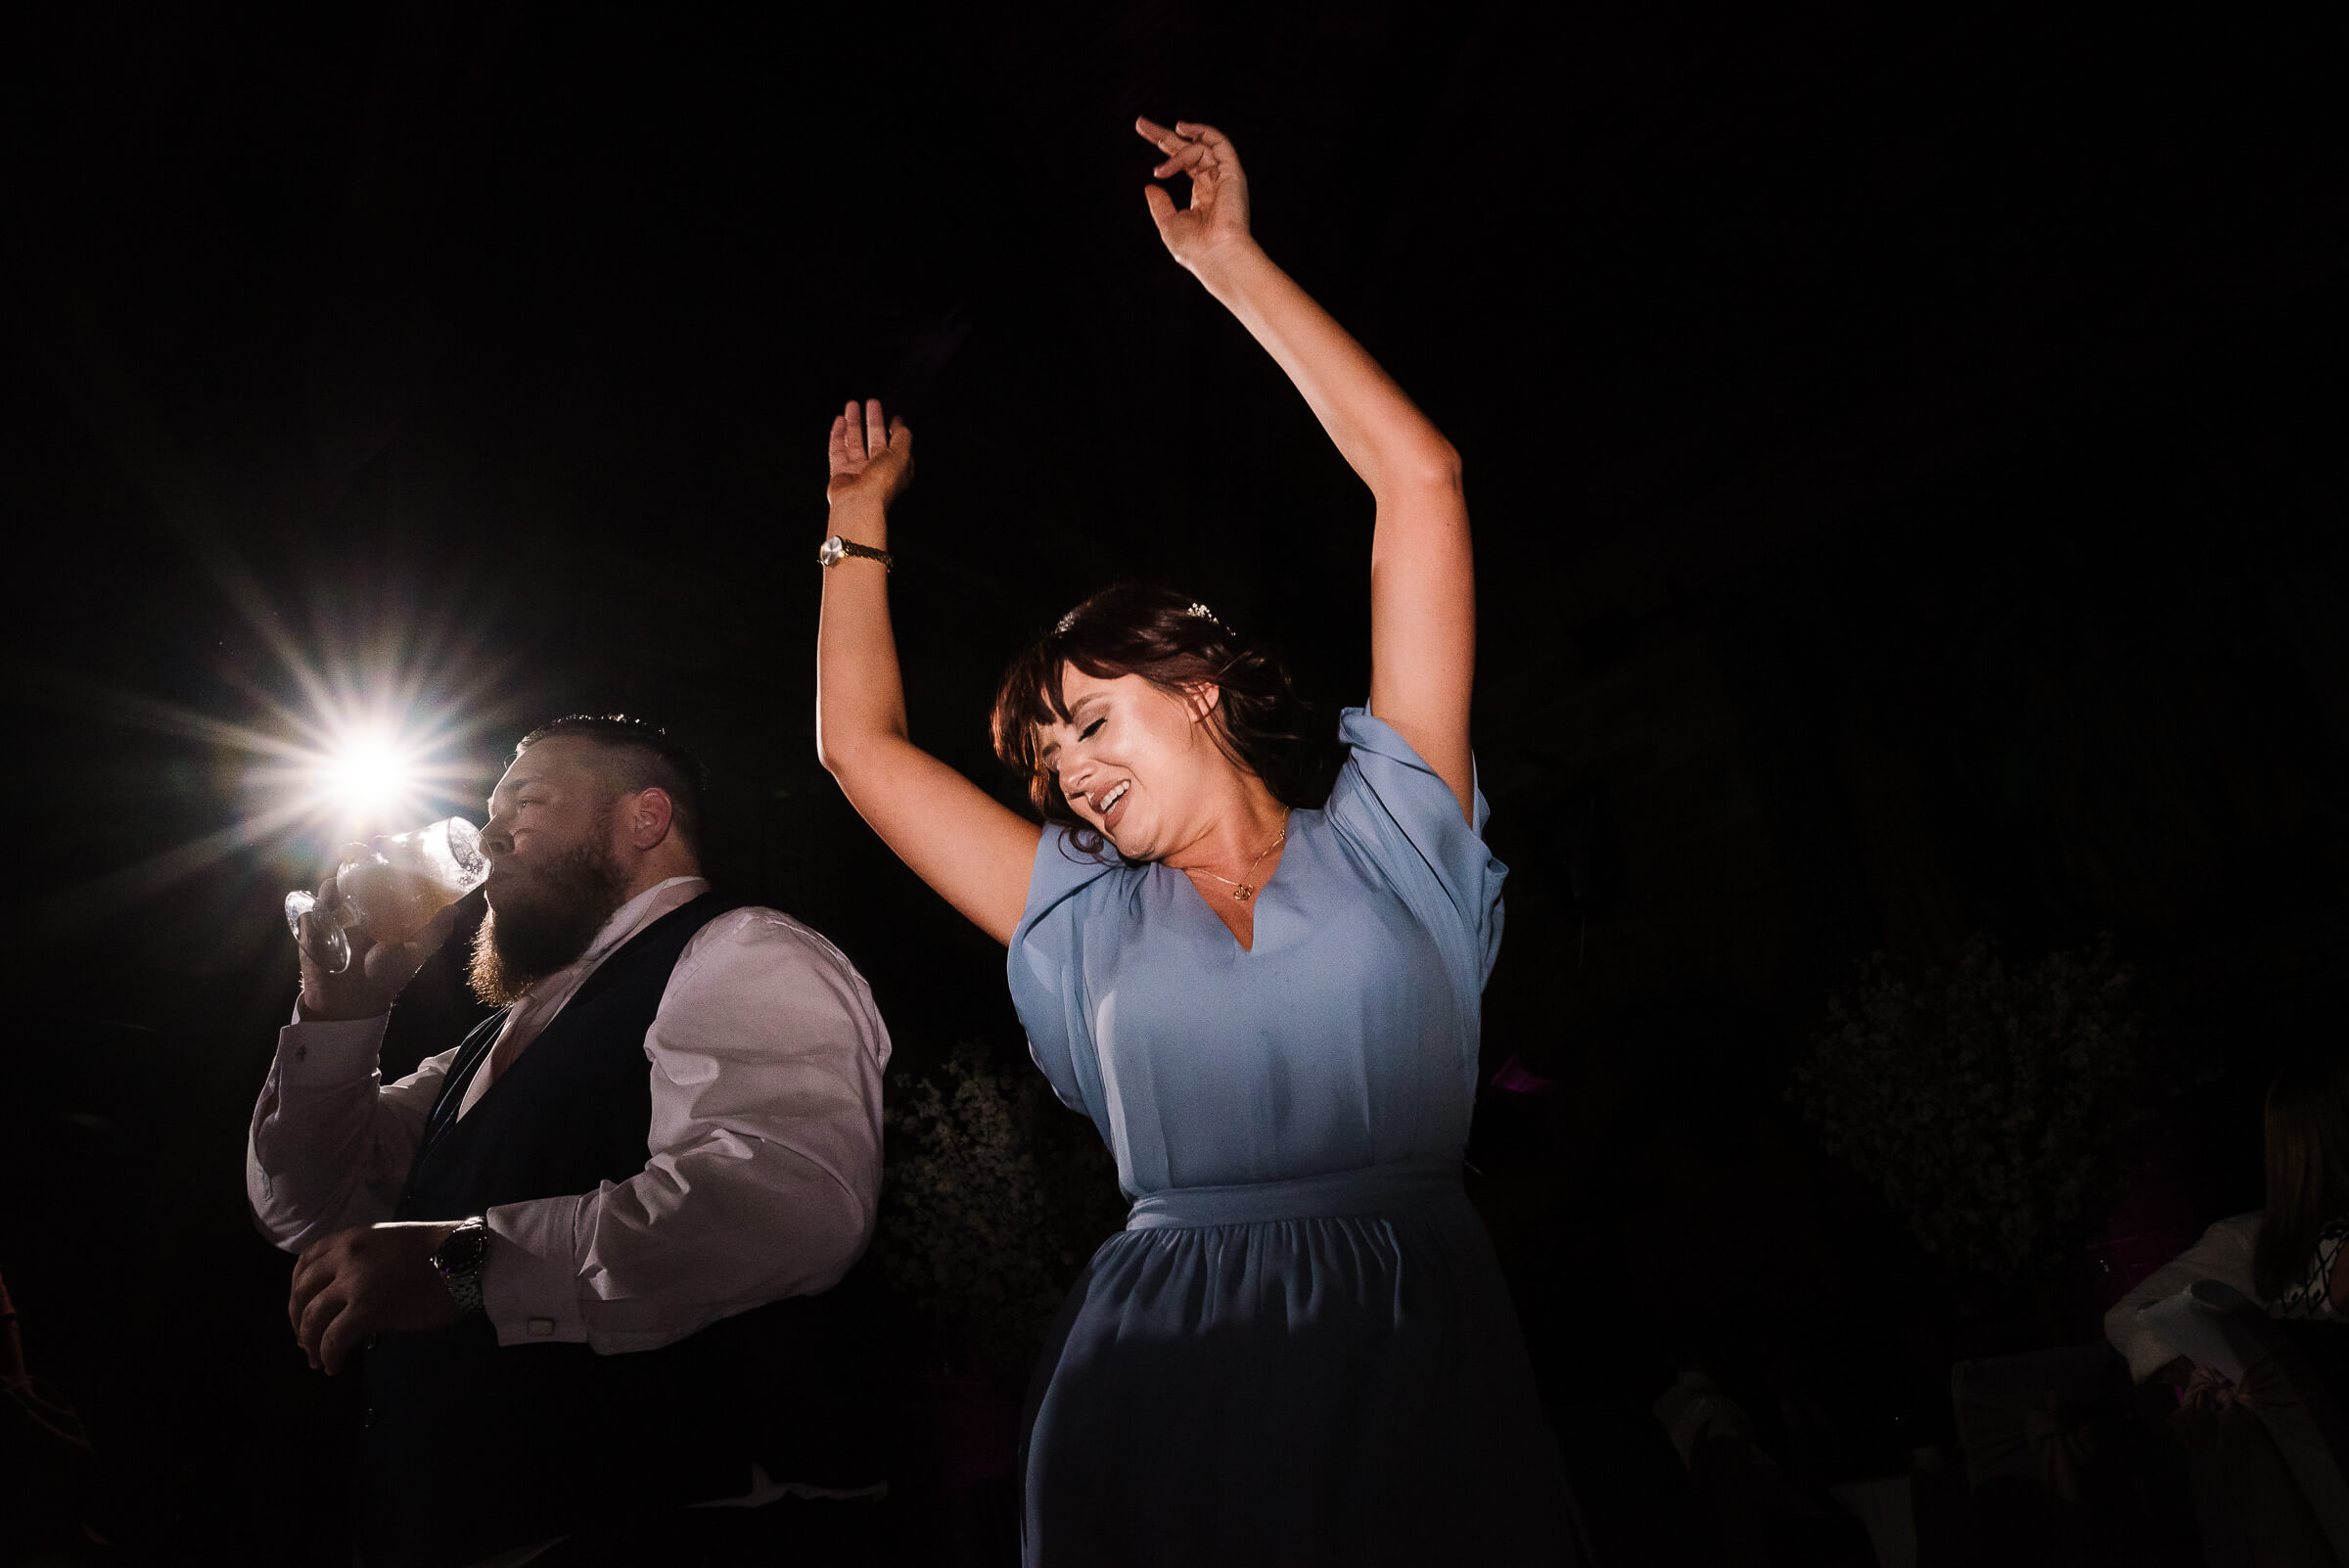 brides friend dancing with arms in the air